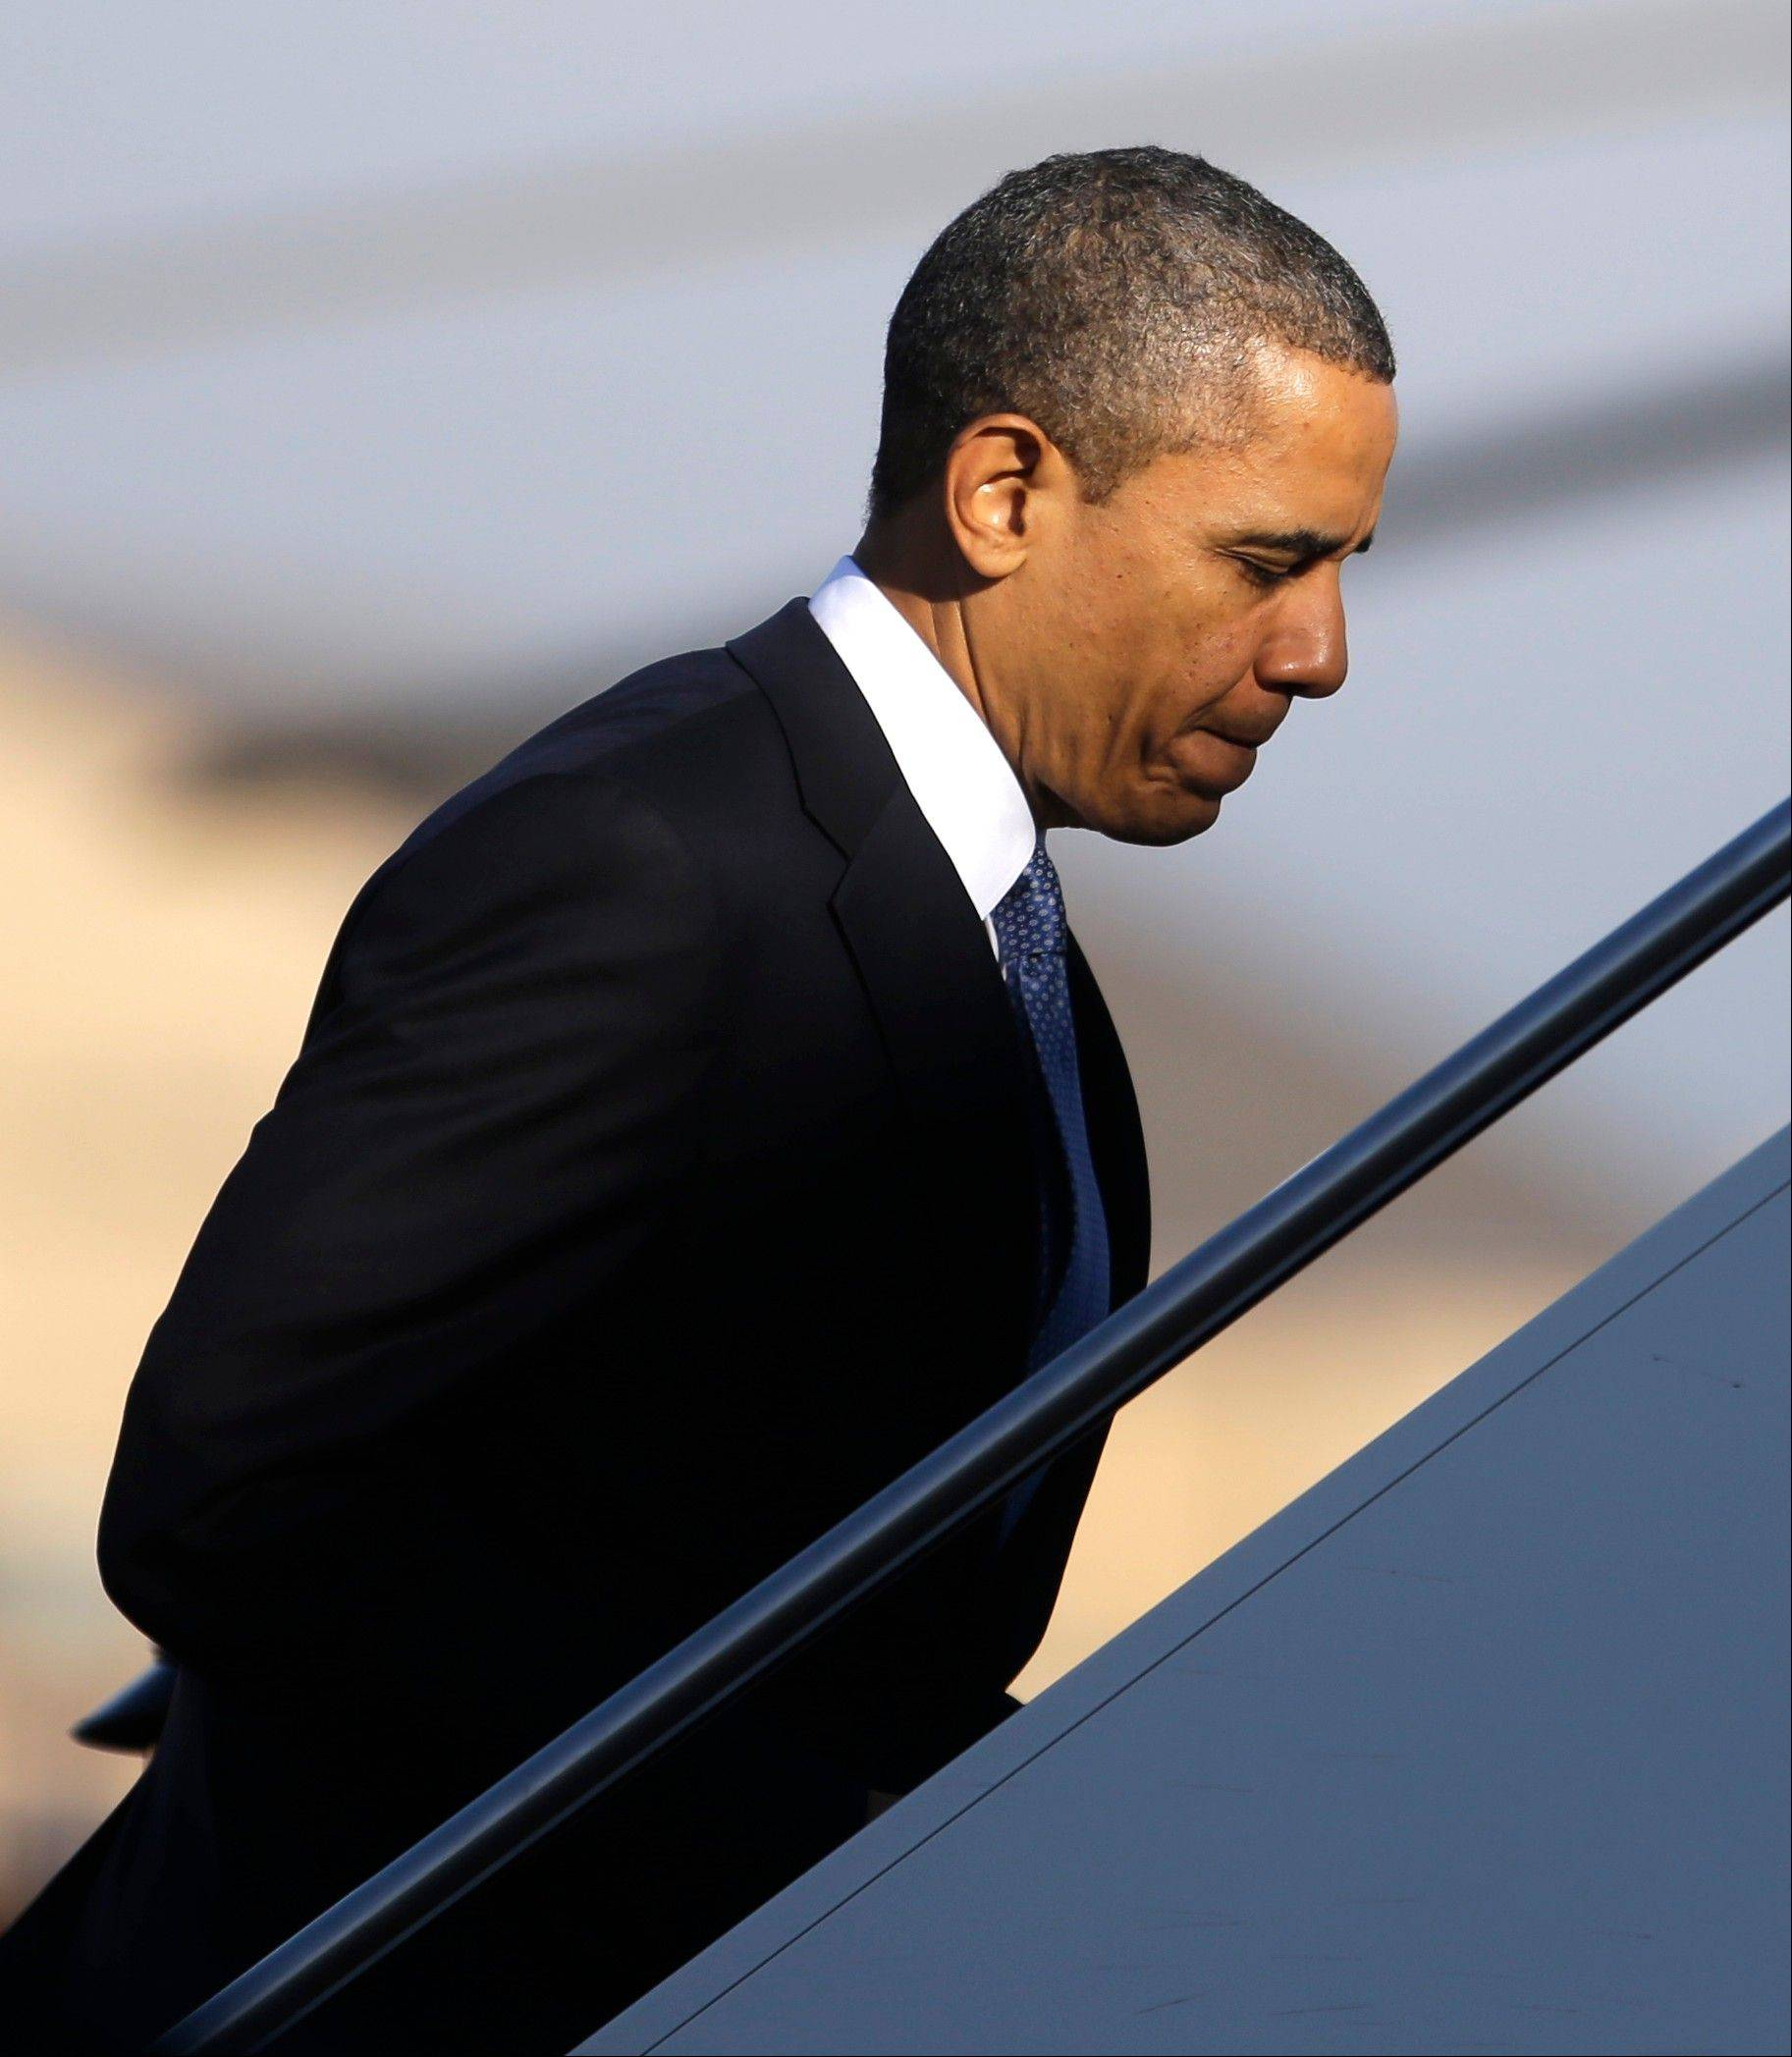 President Barack Obama boards Air Force One, Tuesday, Jan. 29, 2013, in Andrews Air Force Base, Md., en route to Las Vegas to give a speech about immigration.